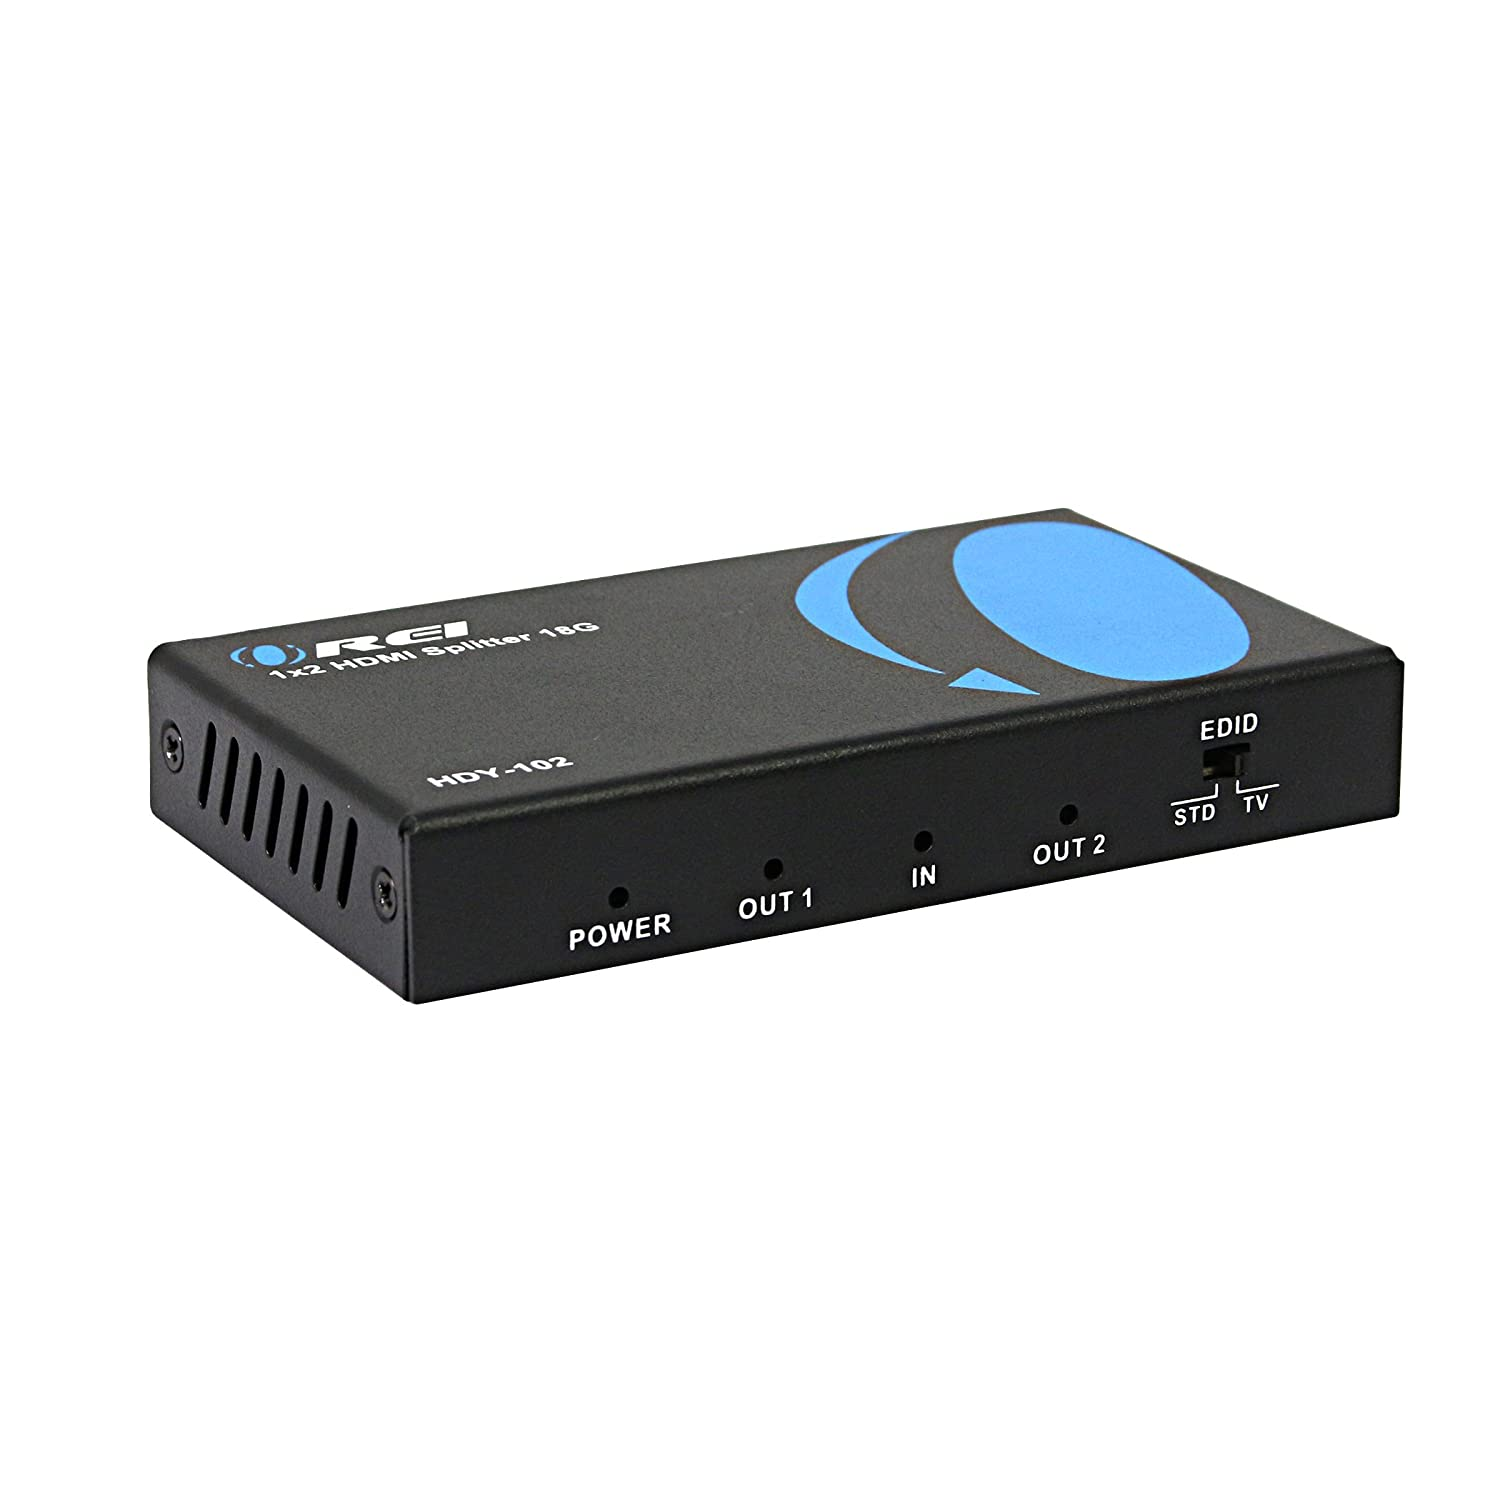 OREI 1x4 2.0 HDMI Splitter 4 Ports with Full Ultra HDCP 2.2, 4K at 60 Hz & 3D Supports EDID Control-HDY-104